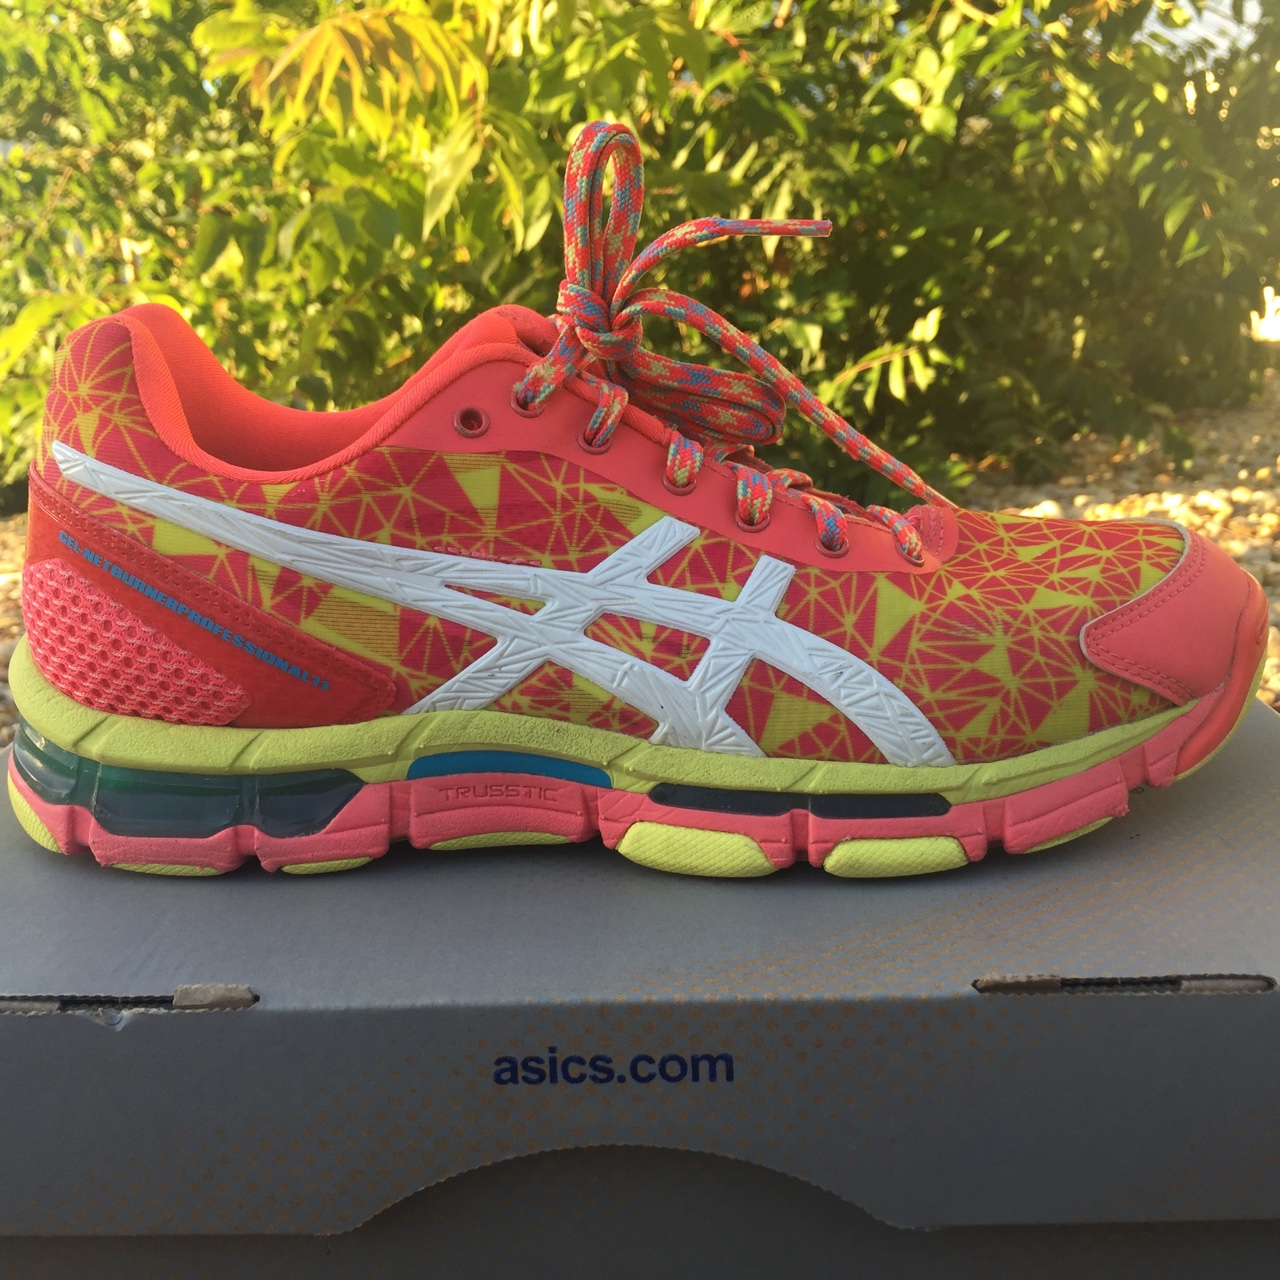 Women's Asics Gel Netburner Professional 11 Shoes Depop